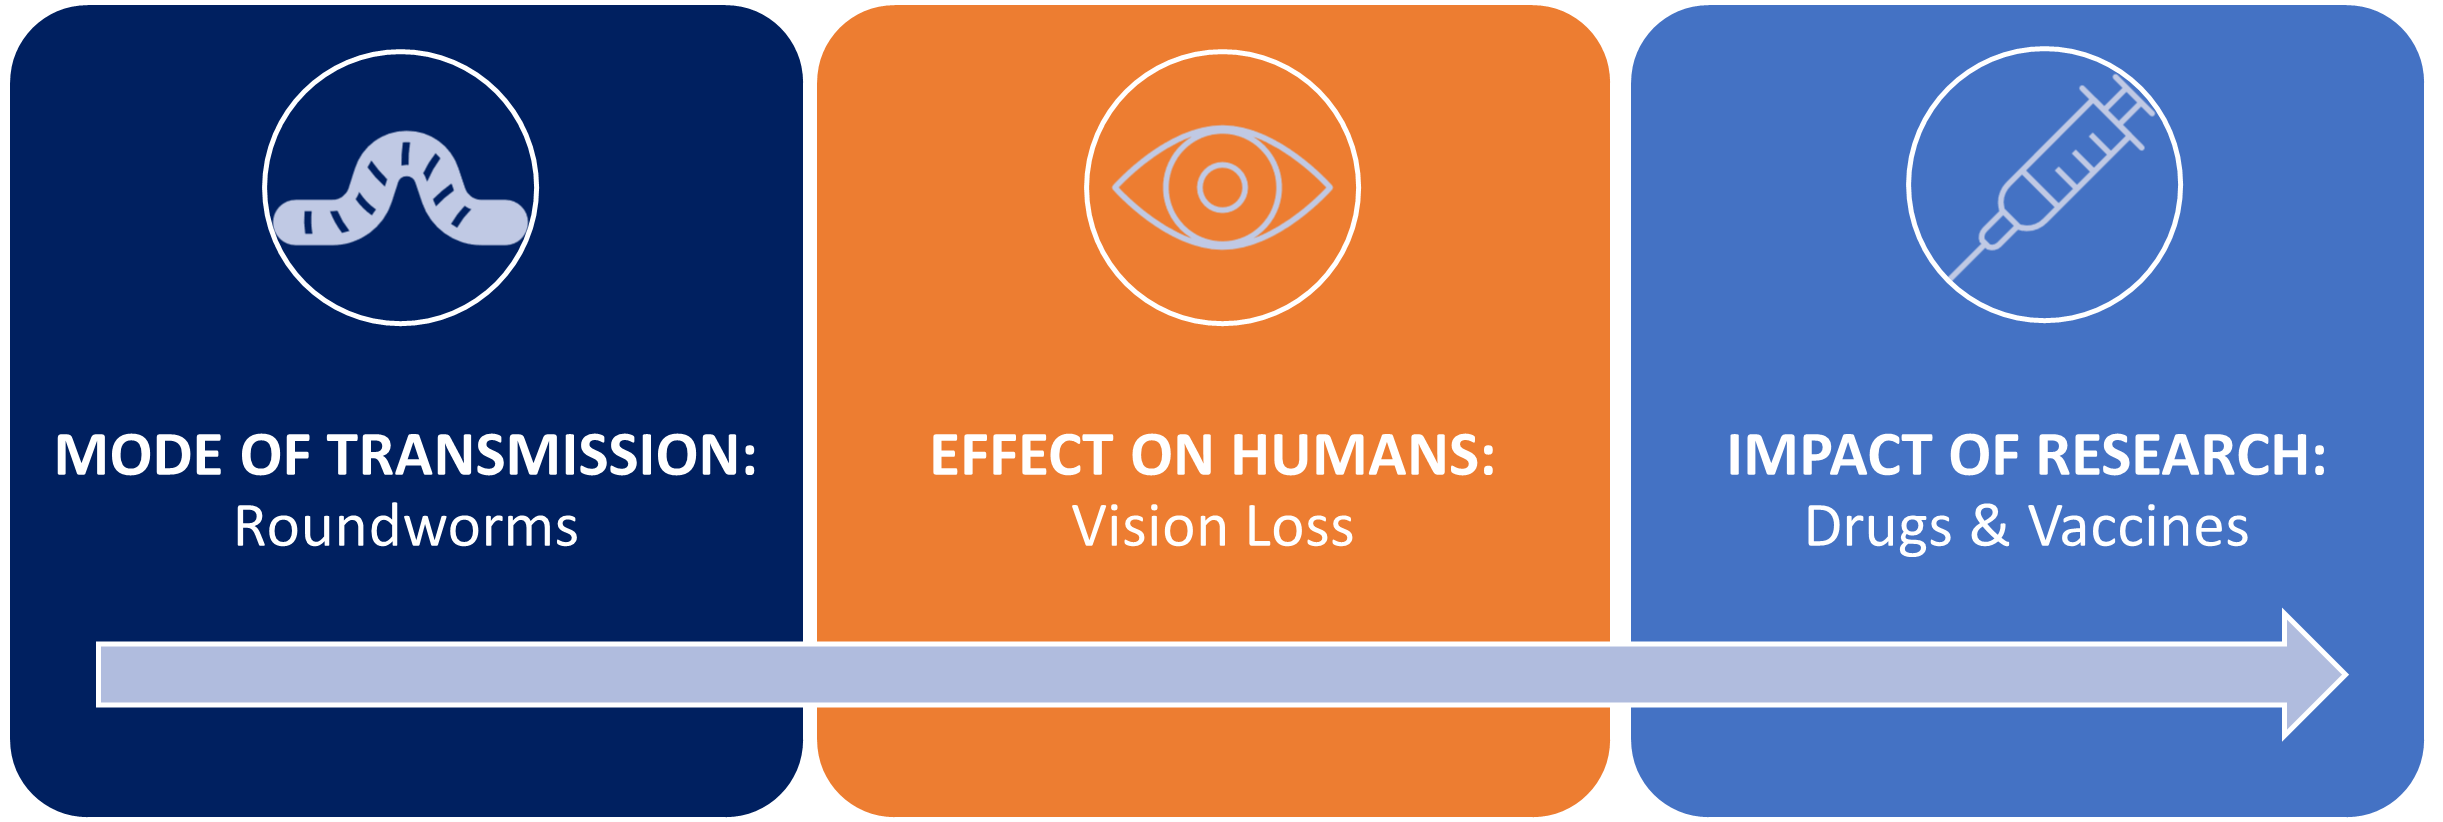 A graphic illustrating how roundworms introduce vision loss in humans, with the impact of research being new drugs and vaccines.